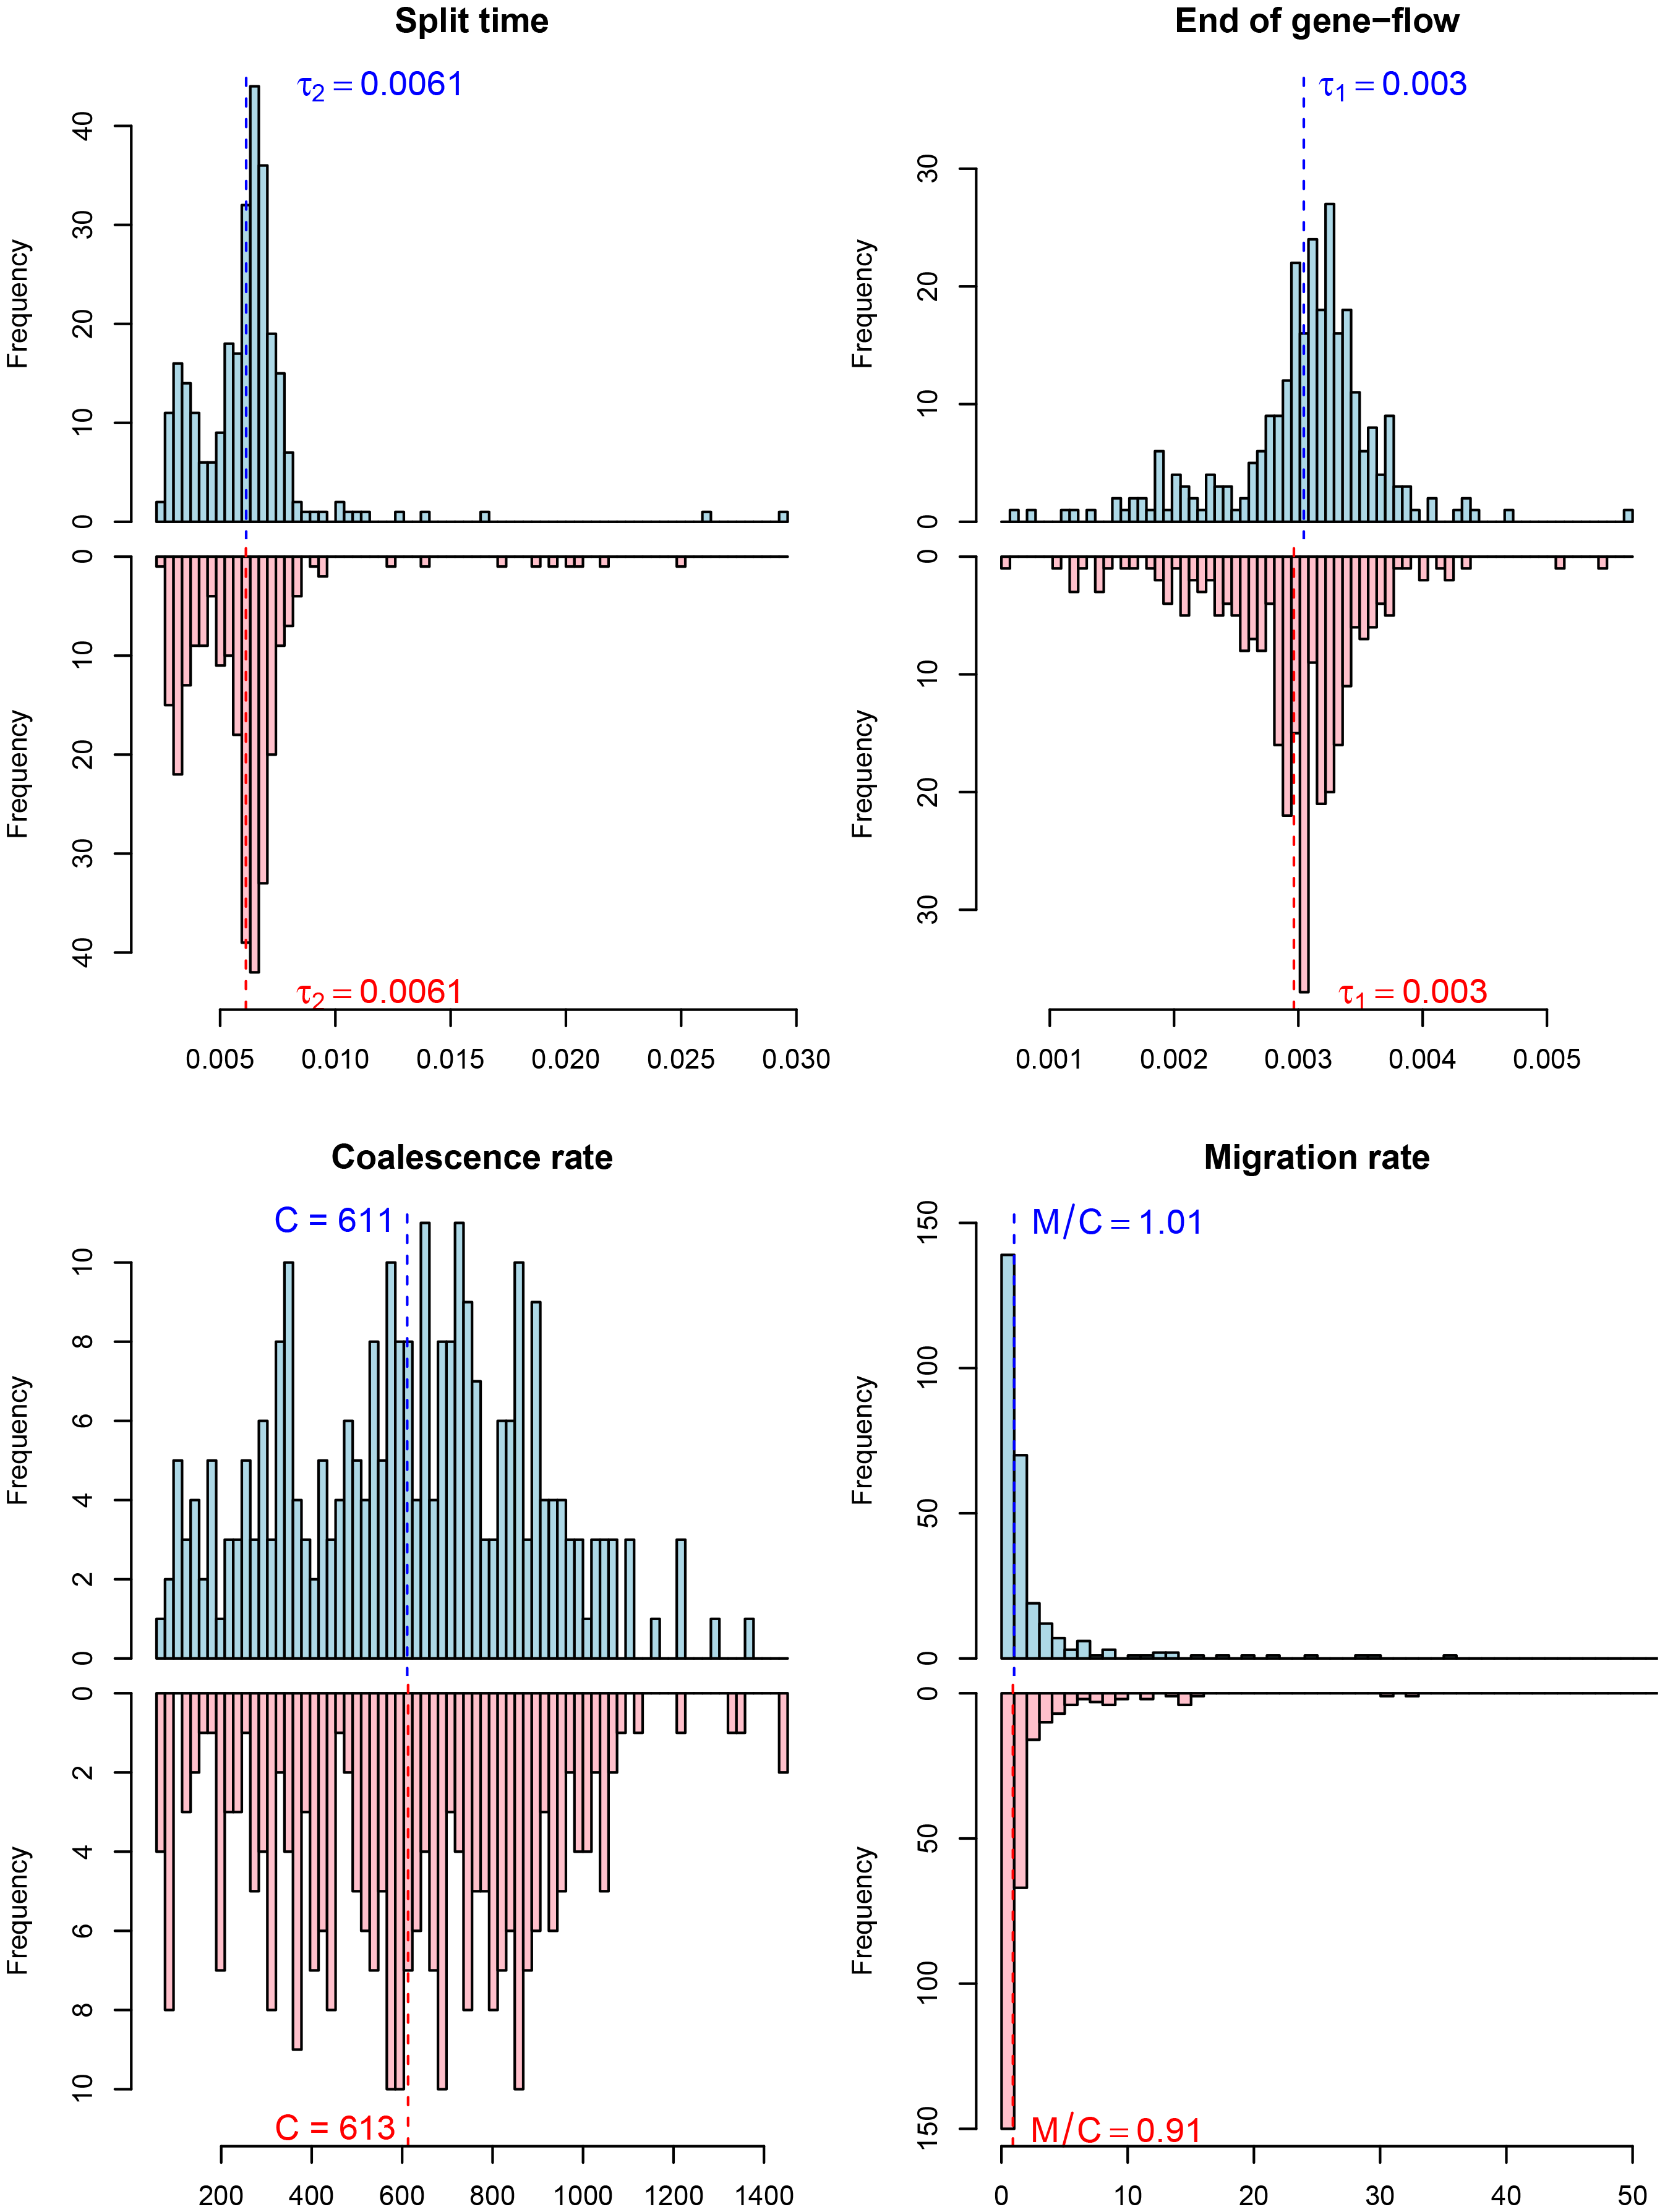 Parameter estimates for the human/chimpanzee split with the isolation-with-migration model.